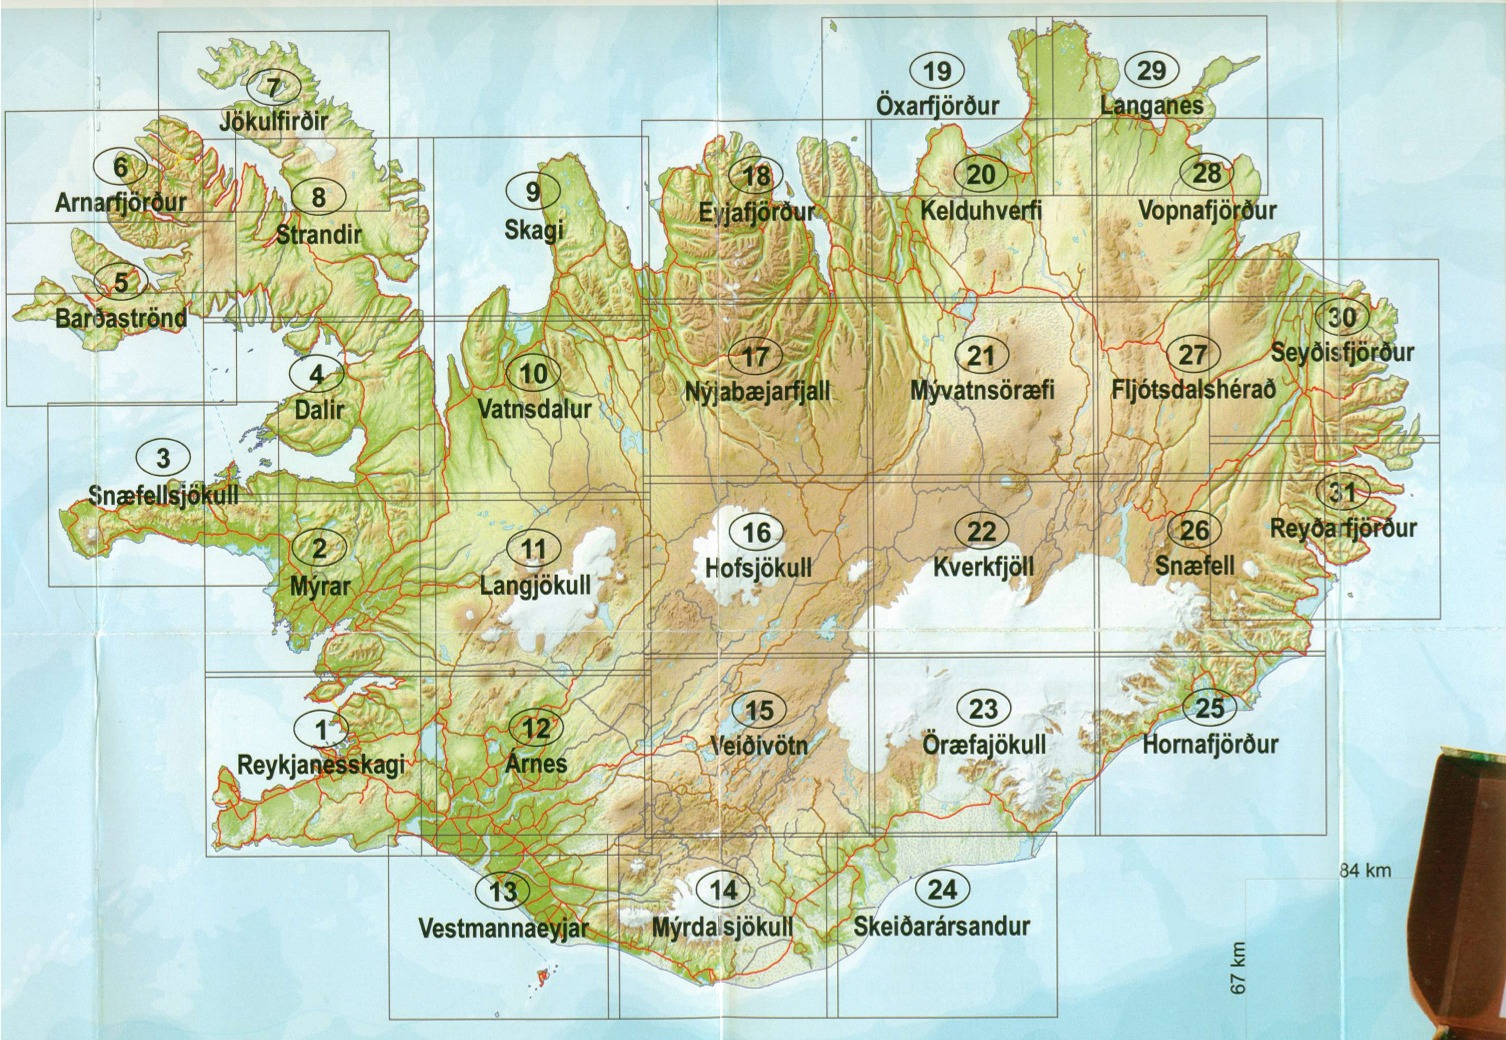 Iceland Buy Maps and travel guides online – Iceland Tourist Attractions Map